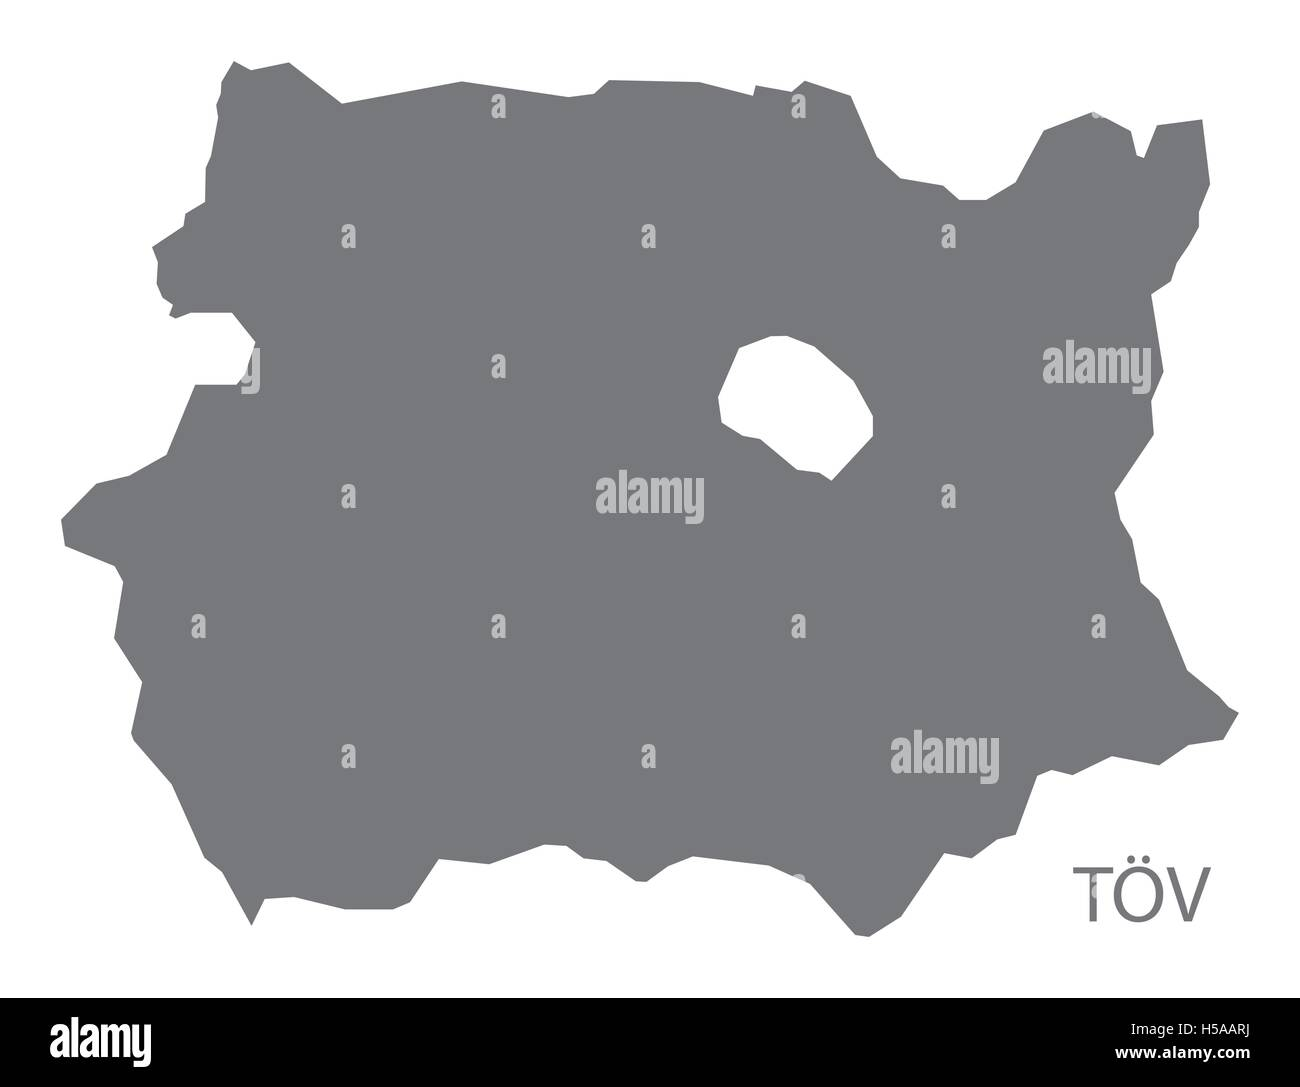 Tov Mongolia Map grey - Stock Vector